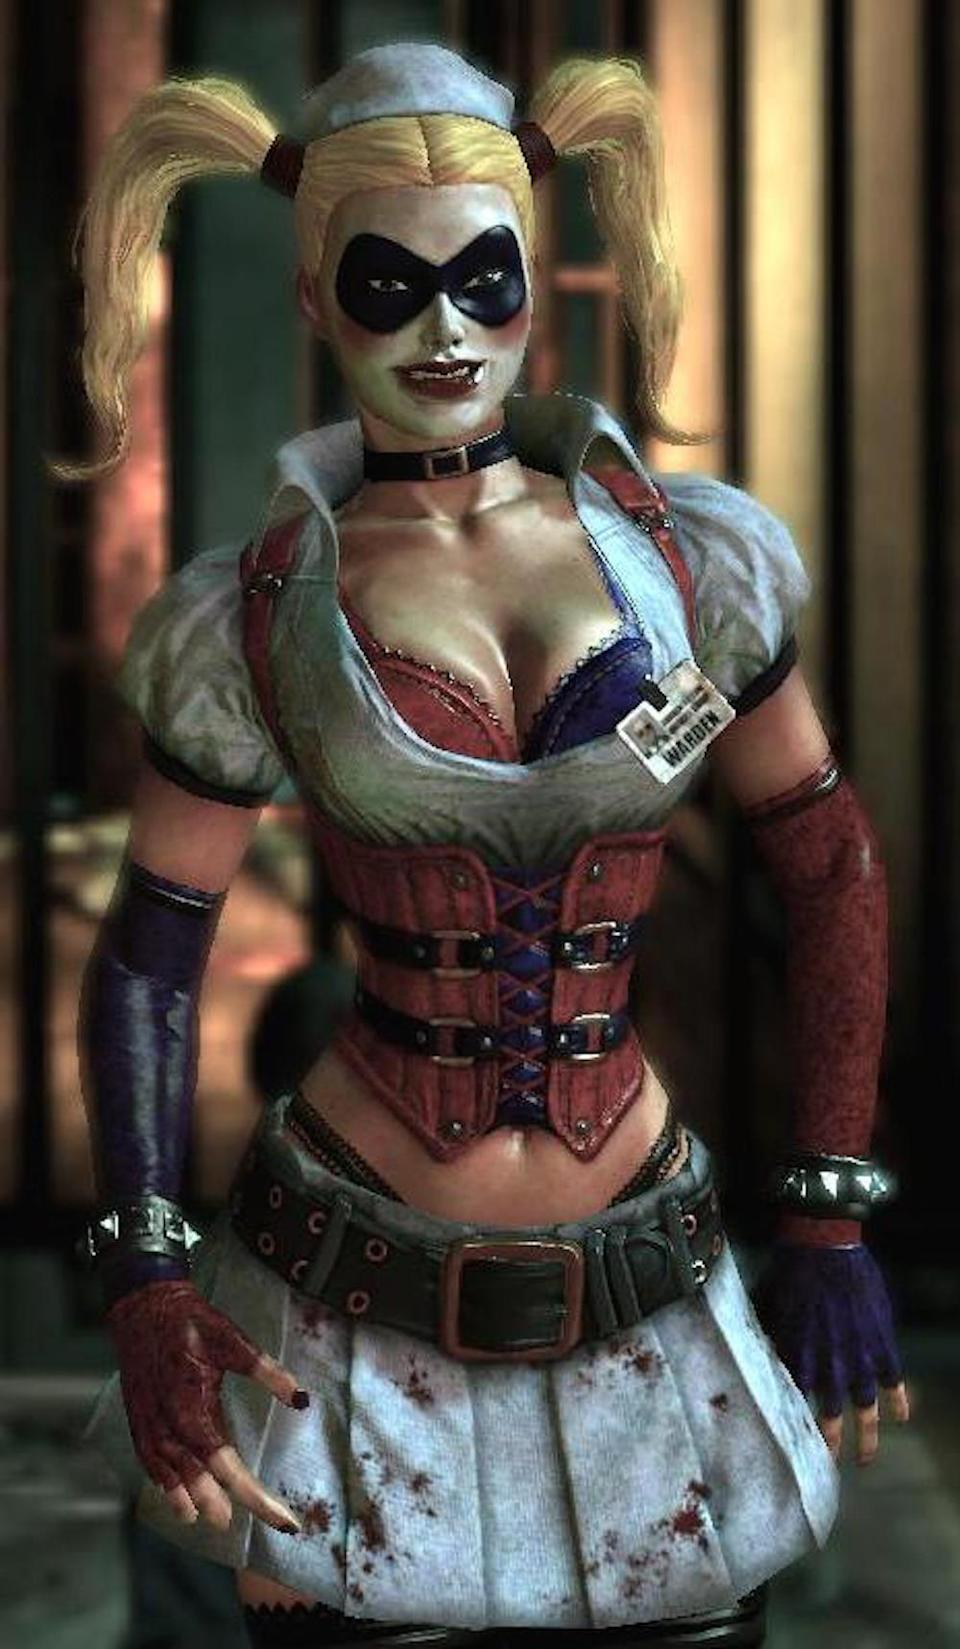 "<p>Rocksteady's seminal <i>Batman: Arkham</i> video-game series <a href=""https://www.yahoo.com/movies/the-stunning-influential-art-of-c1440170871217.html"" data-ylk=""slk:helped establish the visual palette for DC's cinematic universe;outcm:mb_qualified_link;_E:mb_qualified_link;ct:story;"" class=""link rapid-noclick-resp yahoo-link"">helped establish the visual palette for DC's cinematic universe</a>. The ponytailed, nightmarish ""Nurse Harley"" obviously influenced the look of future incarnations, including Robbie's character. <i>(Image: Rocksteady/Warner Bros. Interactive)</i></p>"